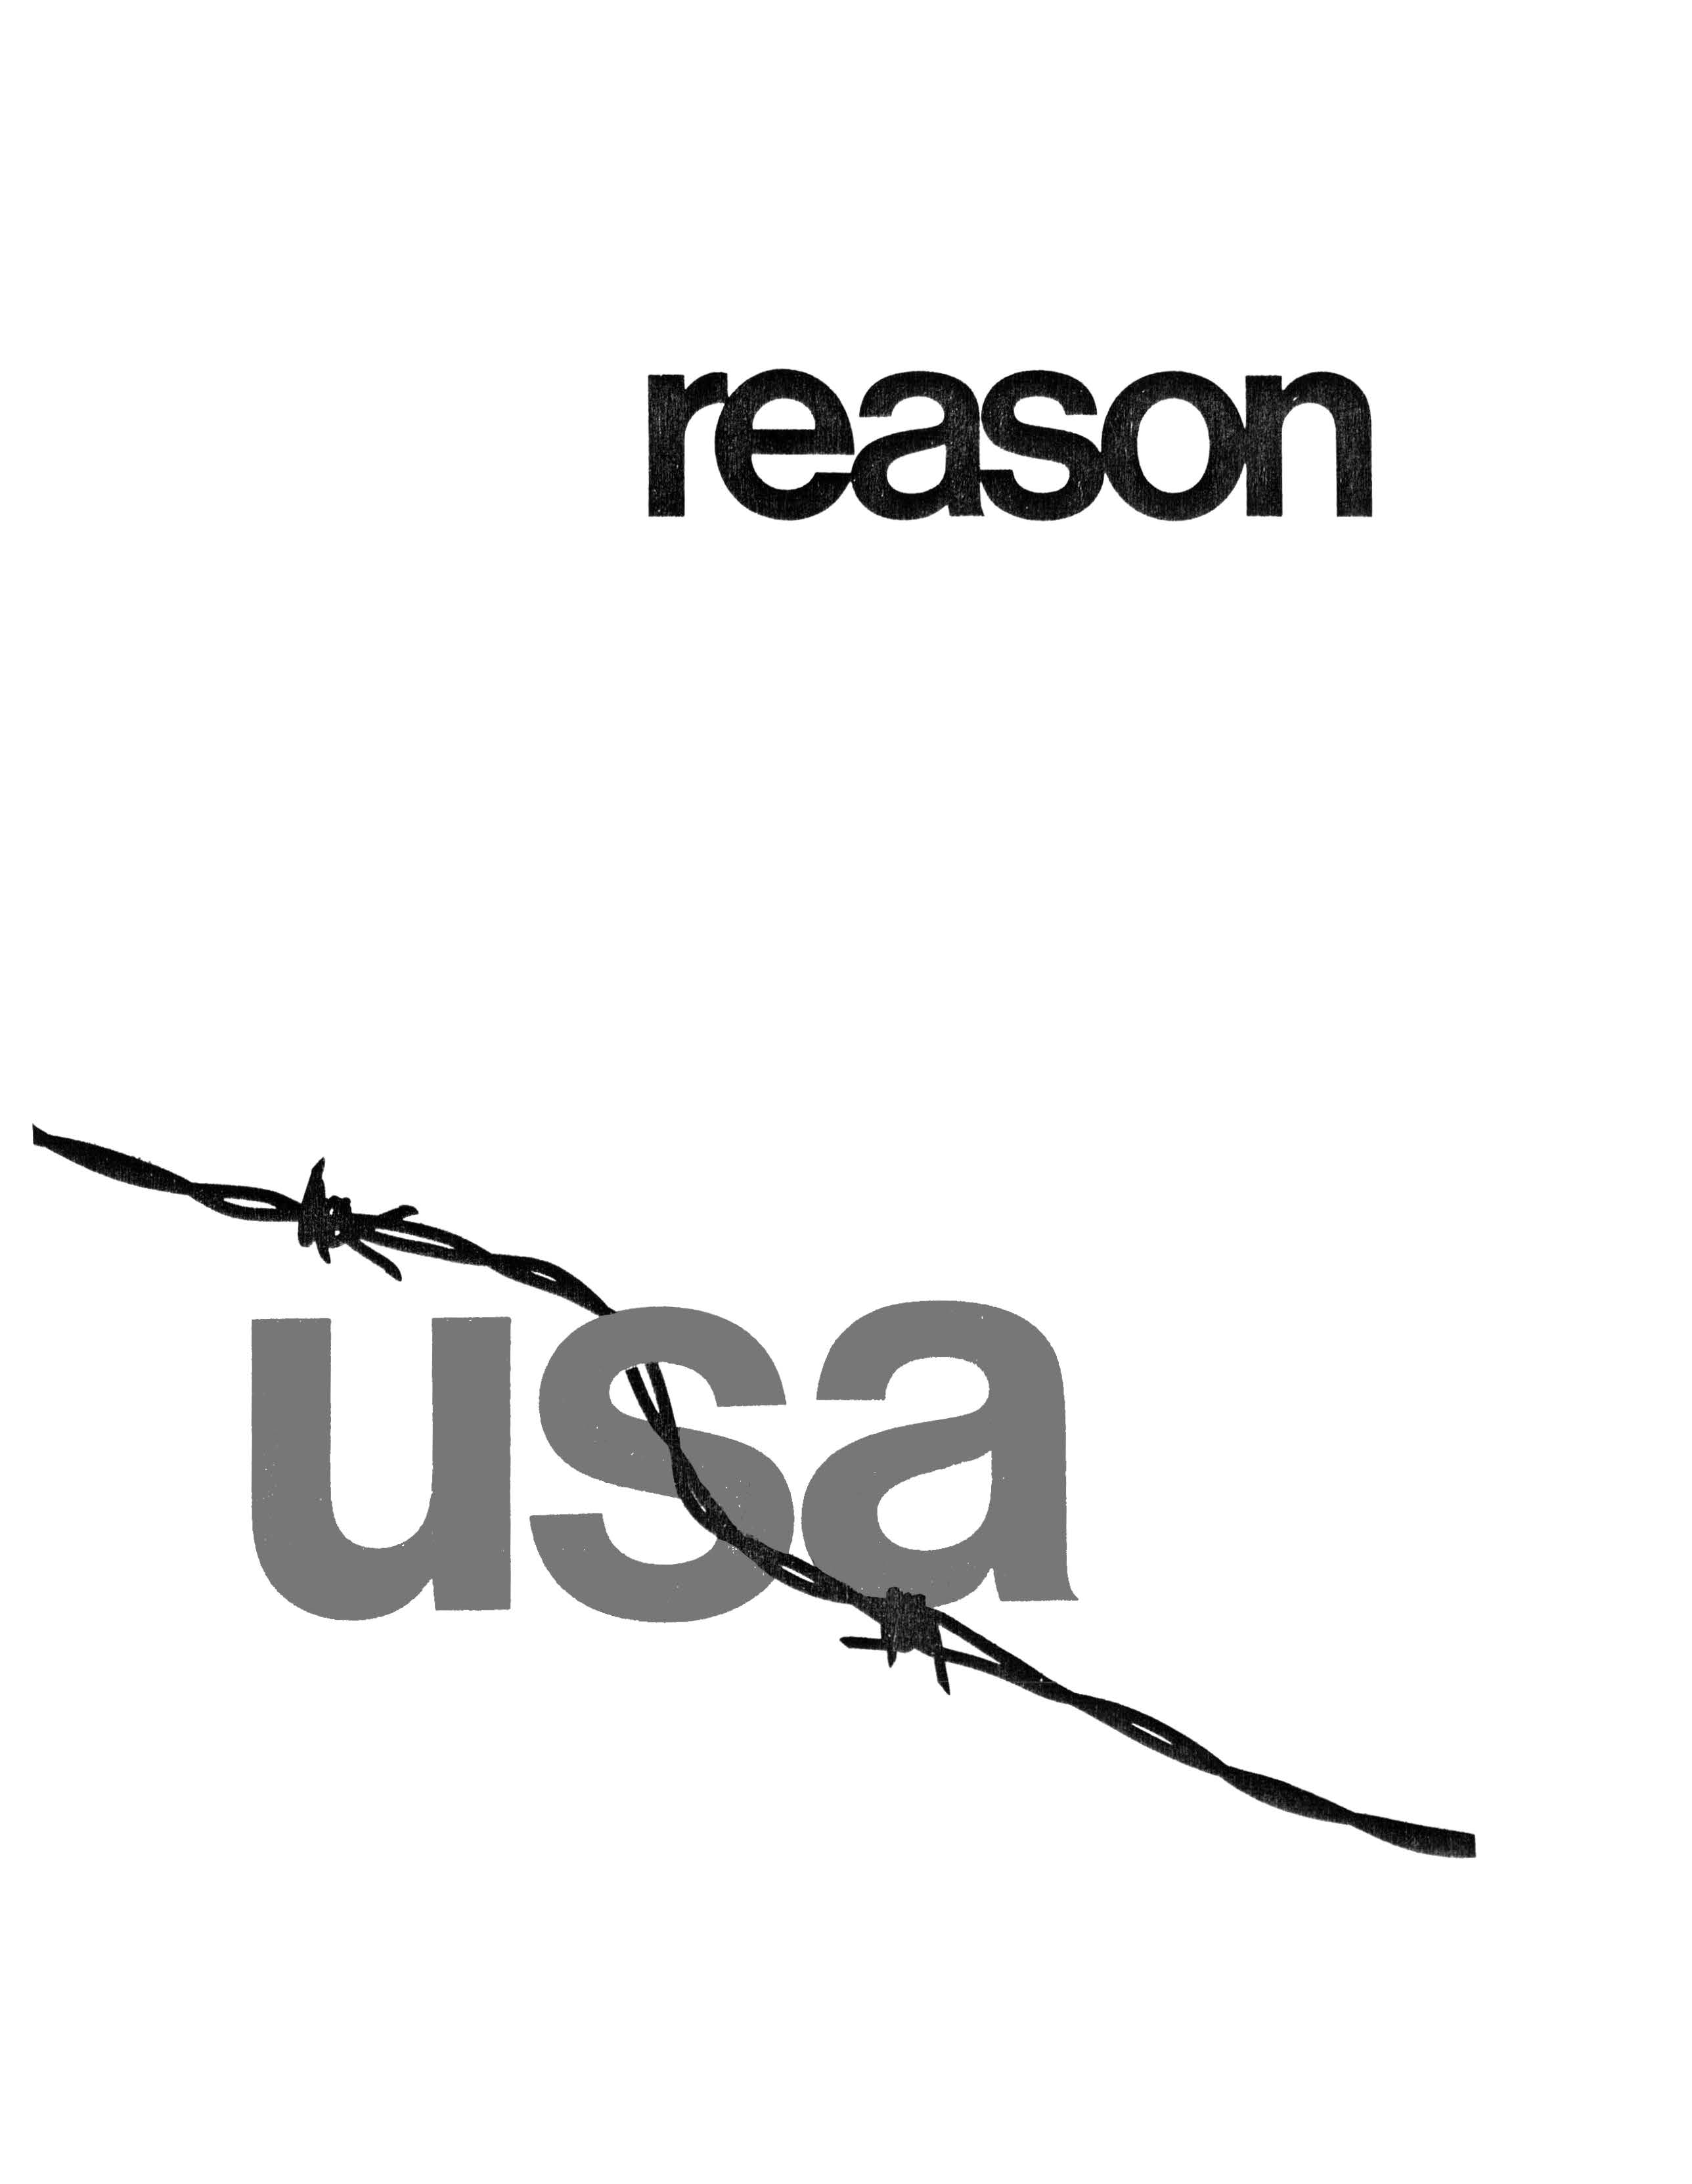 Reason Magazine, May/June 1970 cover image